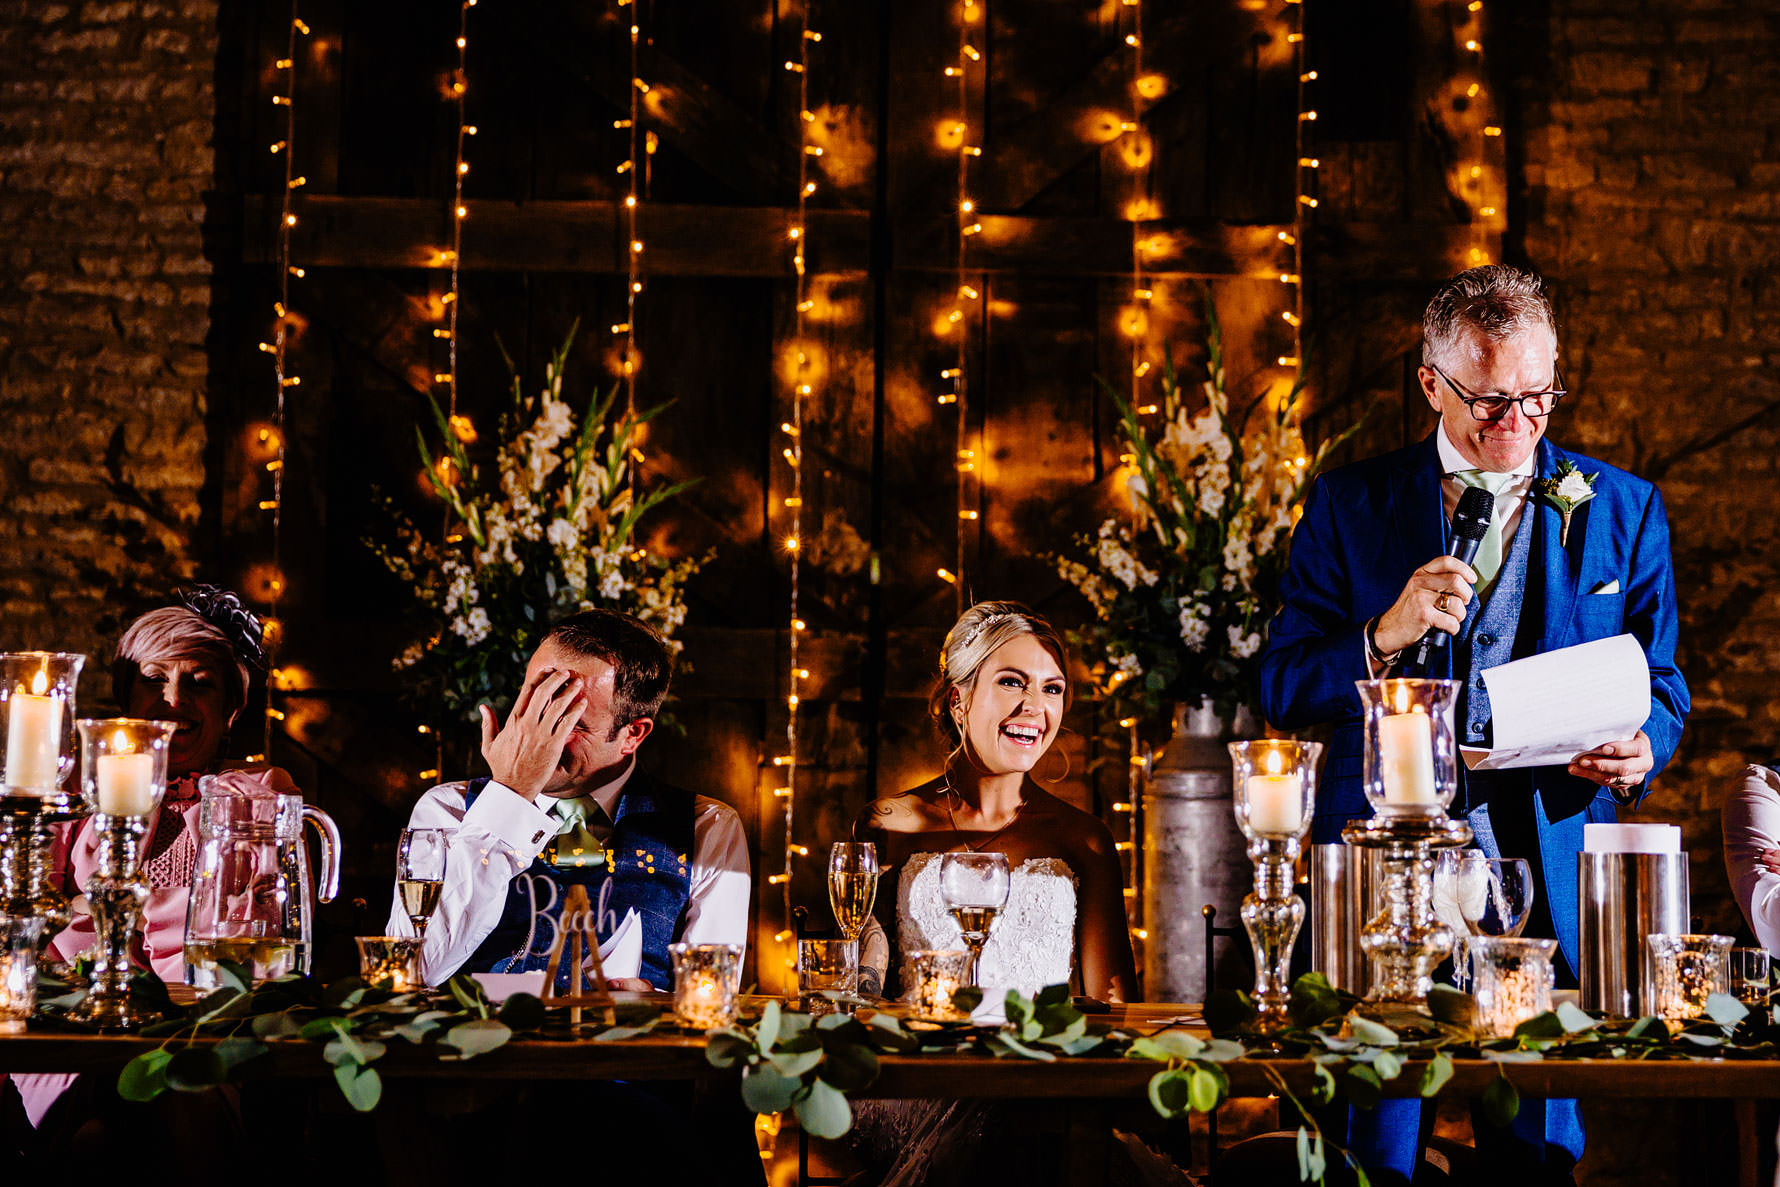 a funny wedding image by Elliot patching